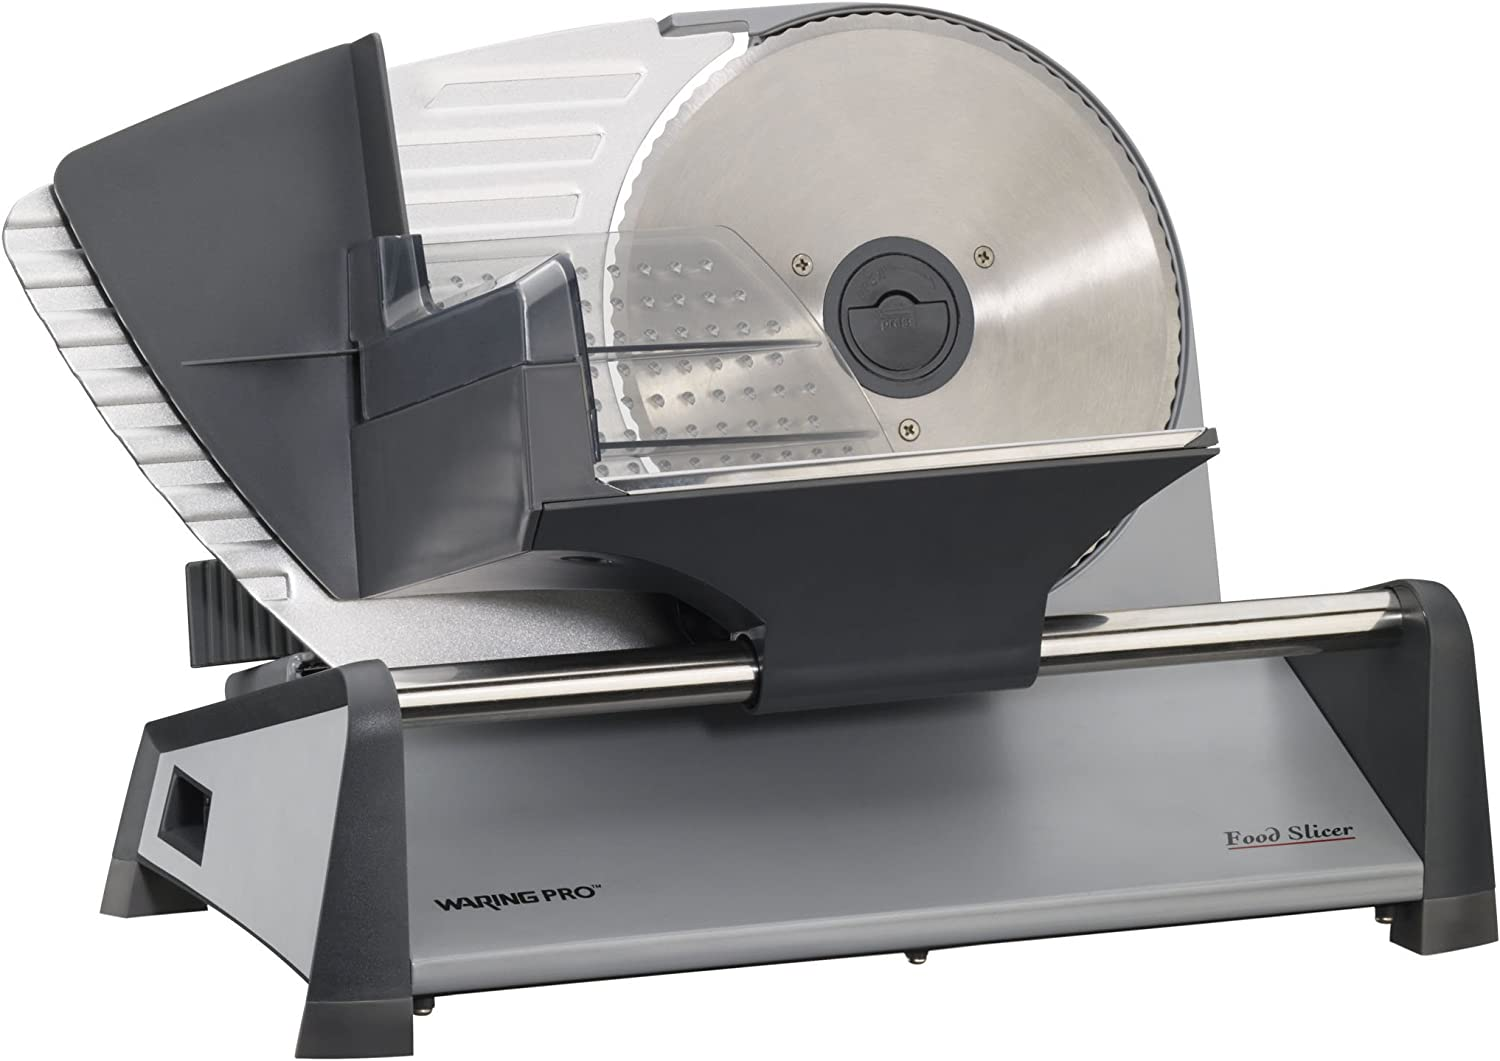 Waring Pro Professional Food Slicer, Stainless Steel